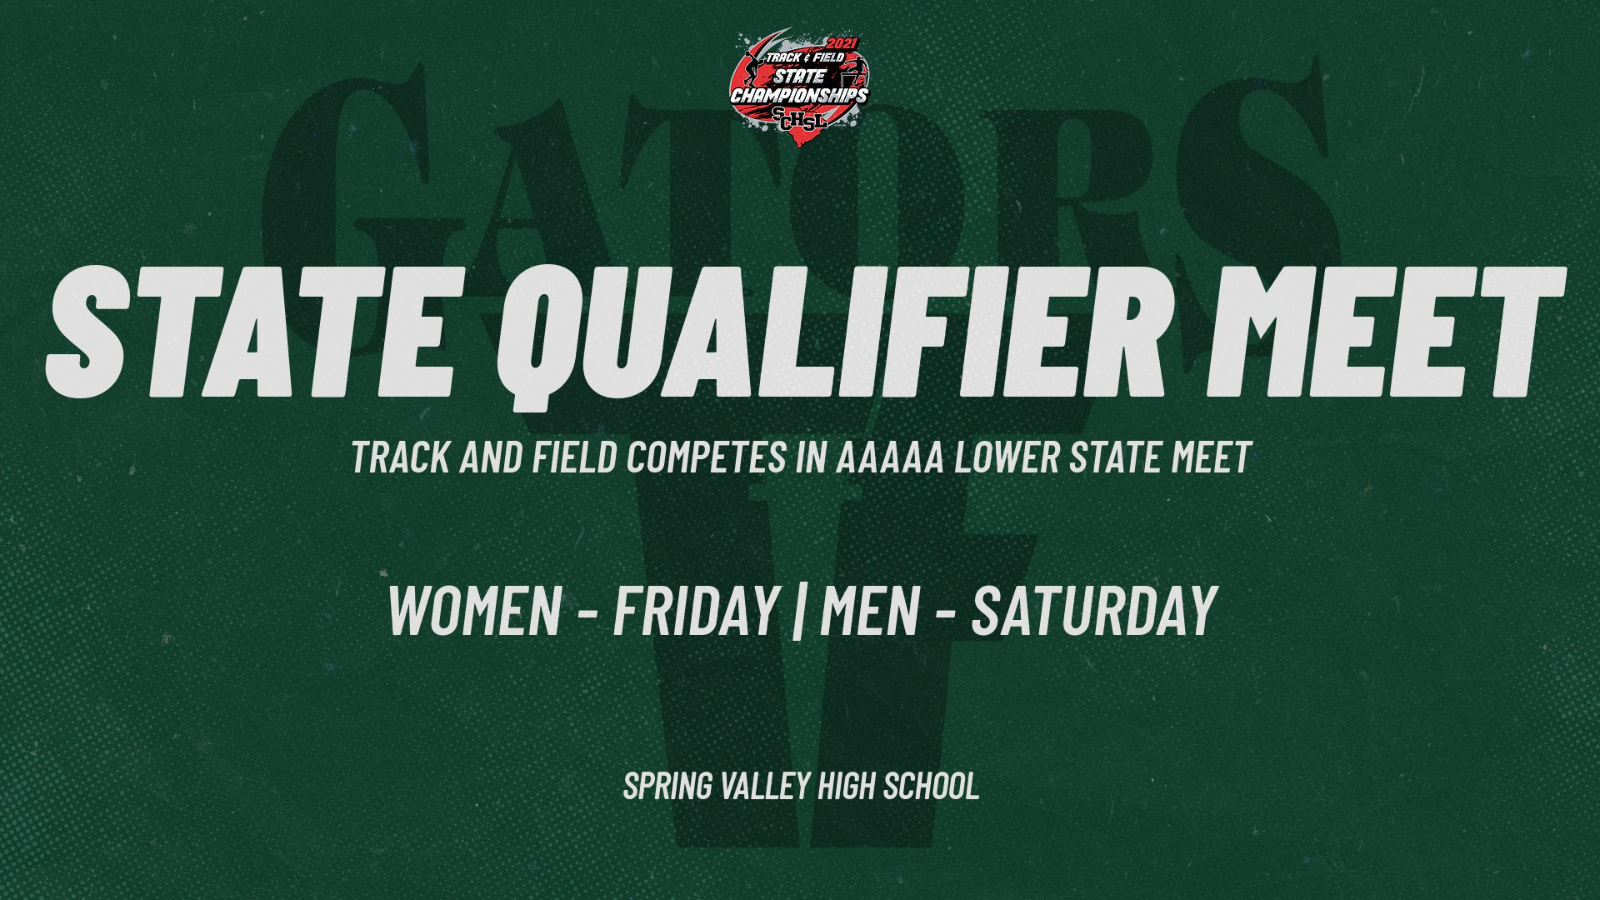 AAAAA State Qualifiers for Gator Track and Field Start Today!